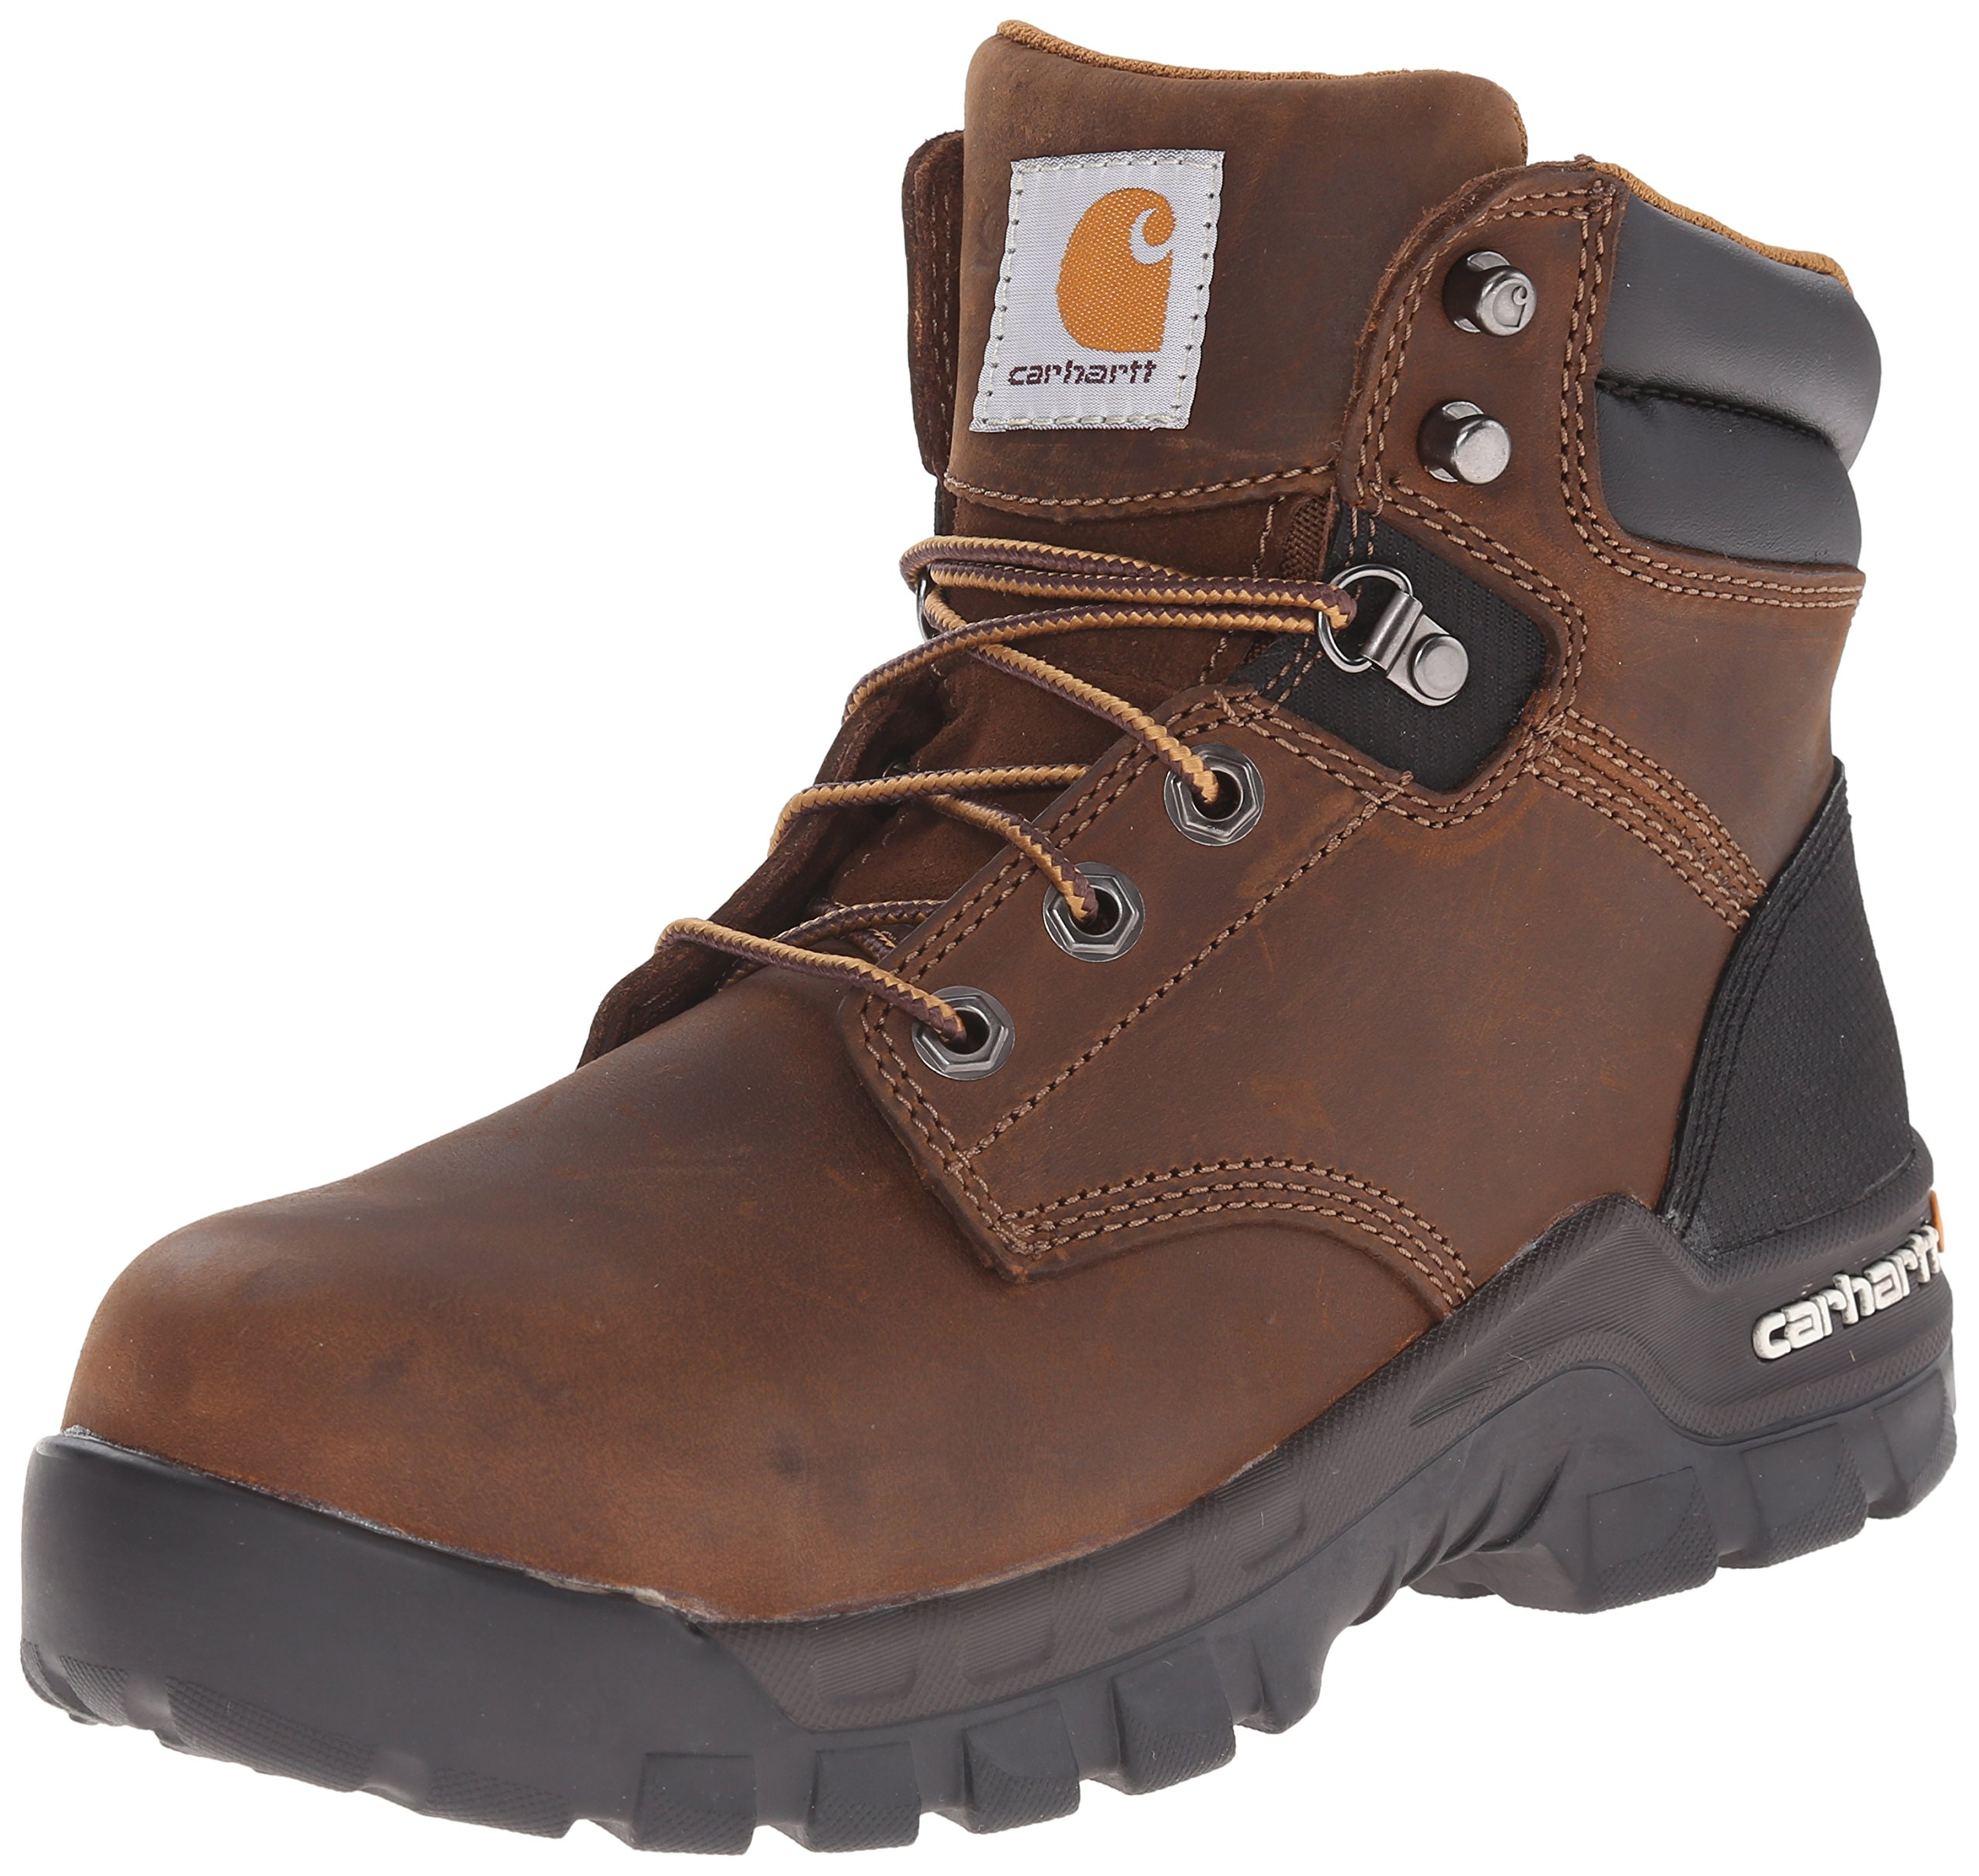 Carhartt Women's Rugged Flex 6 inch Comp Toe CWF5355-W, Brown, 8.5 M US